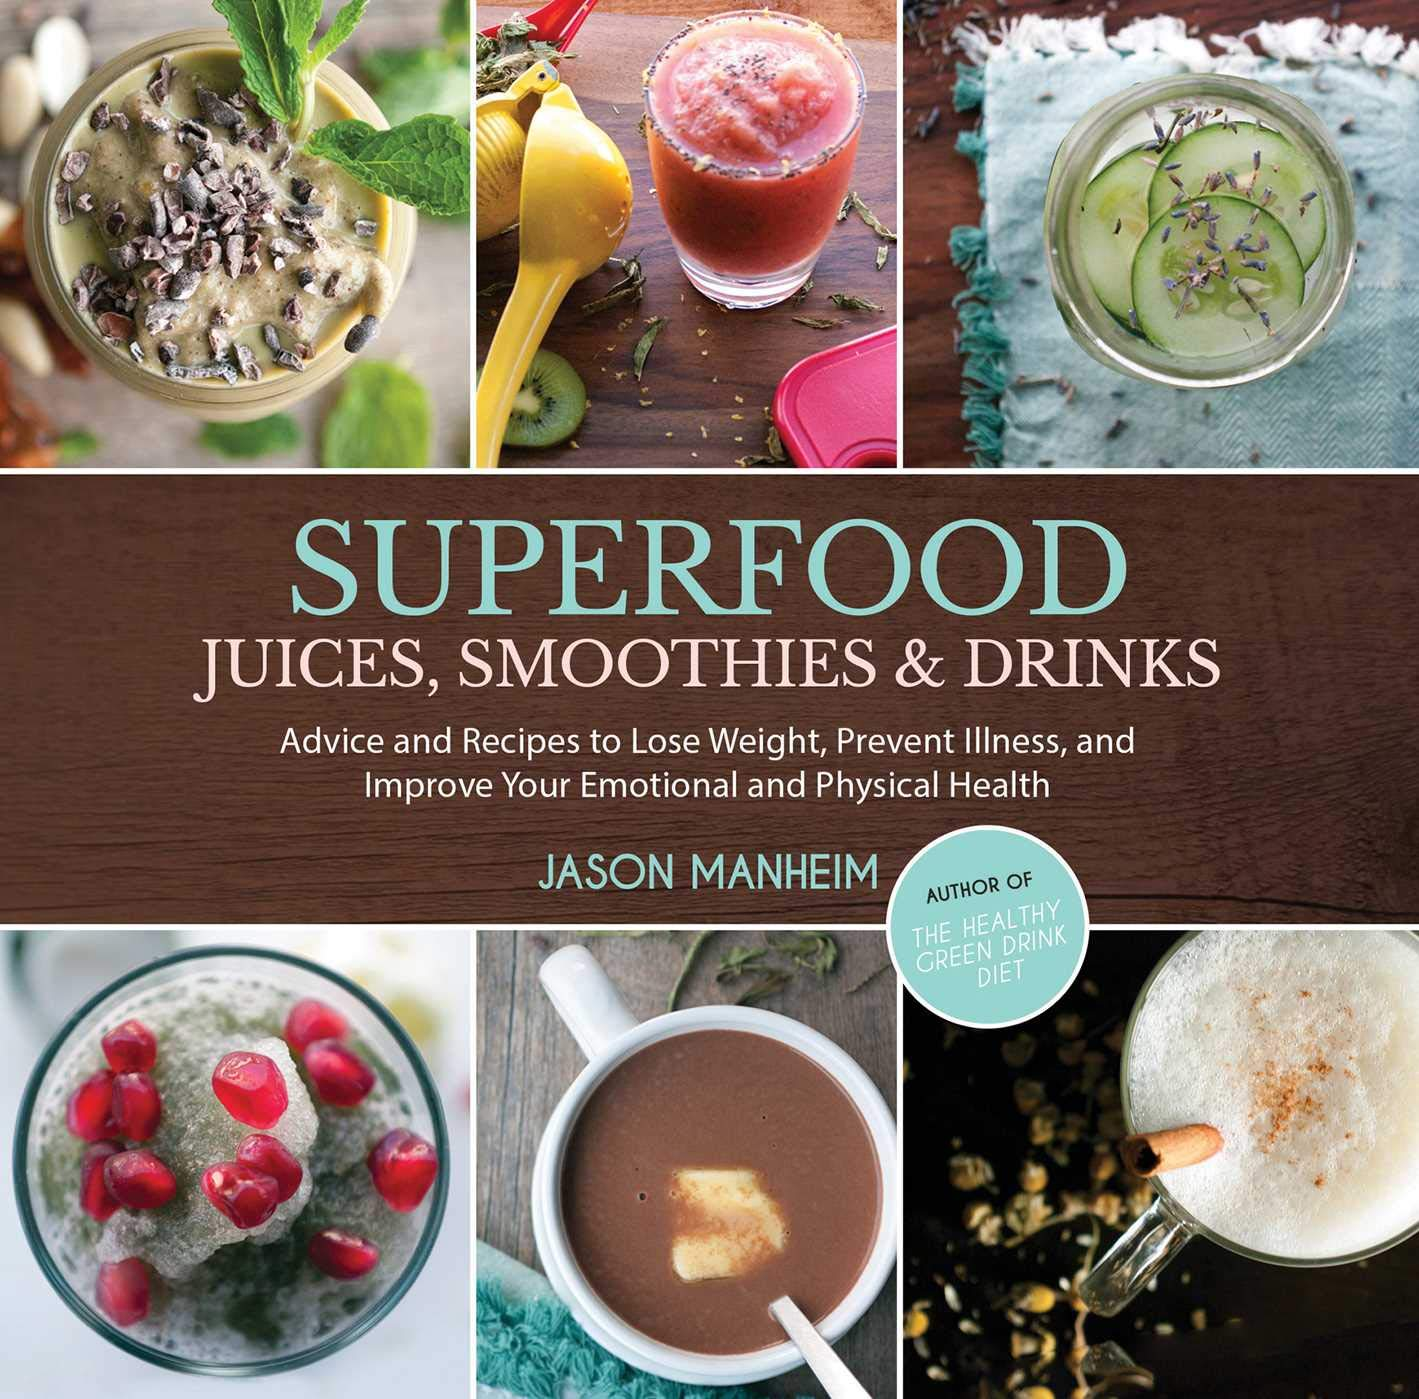 ba2f5f078cf Amazon.com: Superfood Juices, Smoothies & Drinks: Advice and Recipes ...